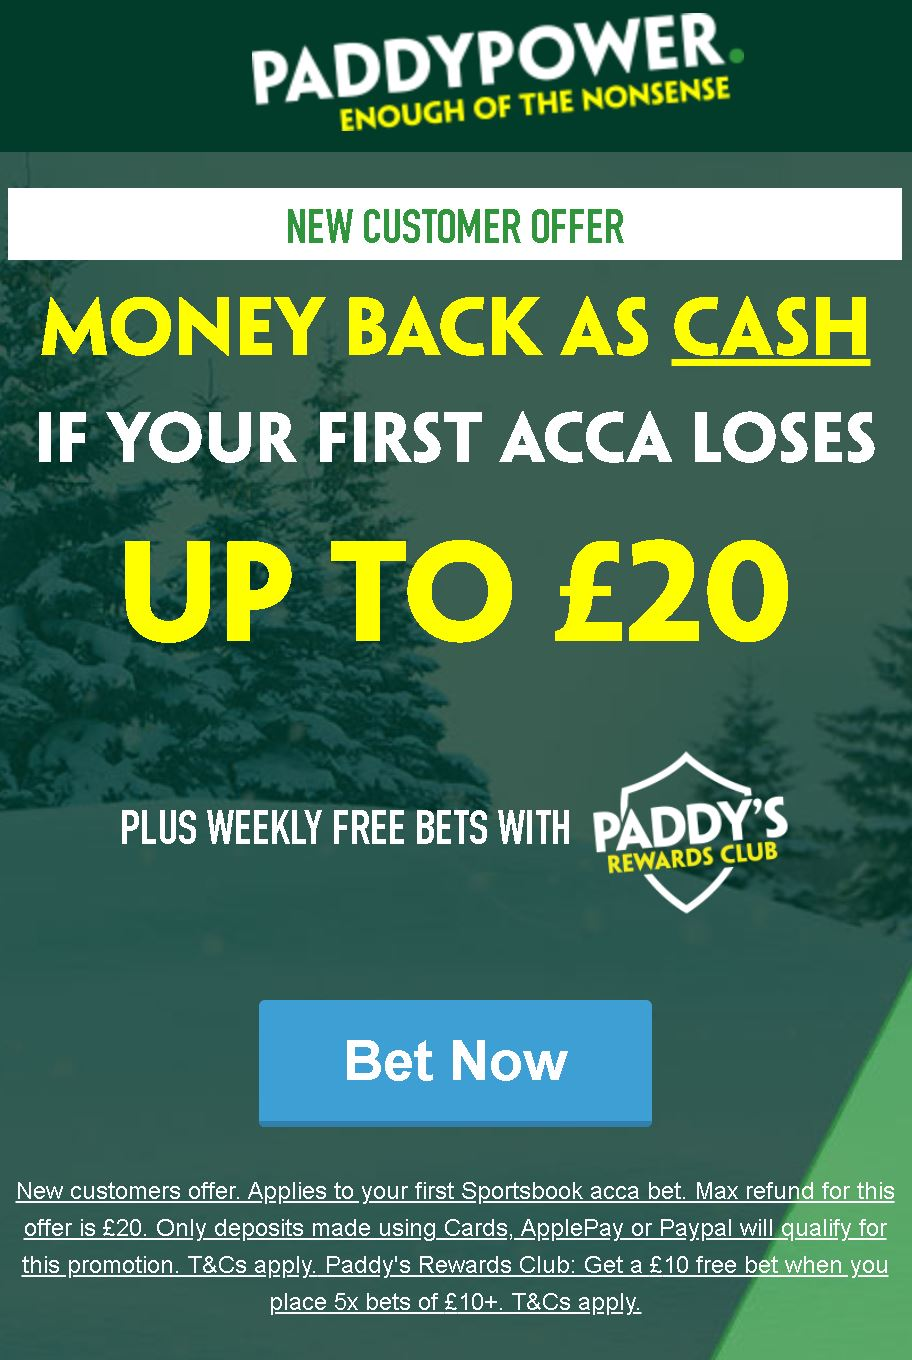 Paddy Power £20 acca offer